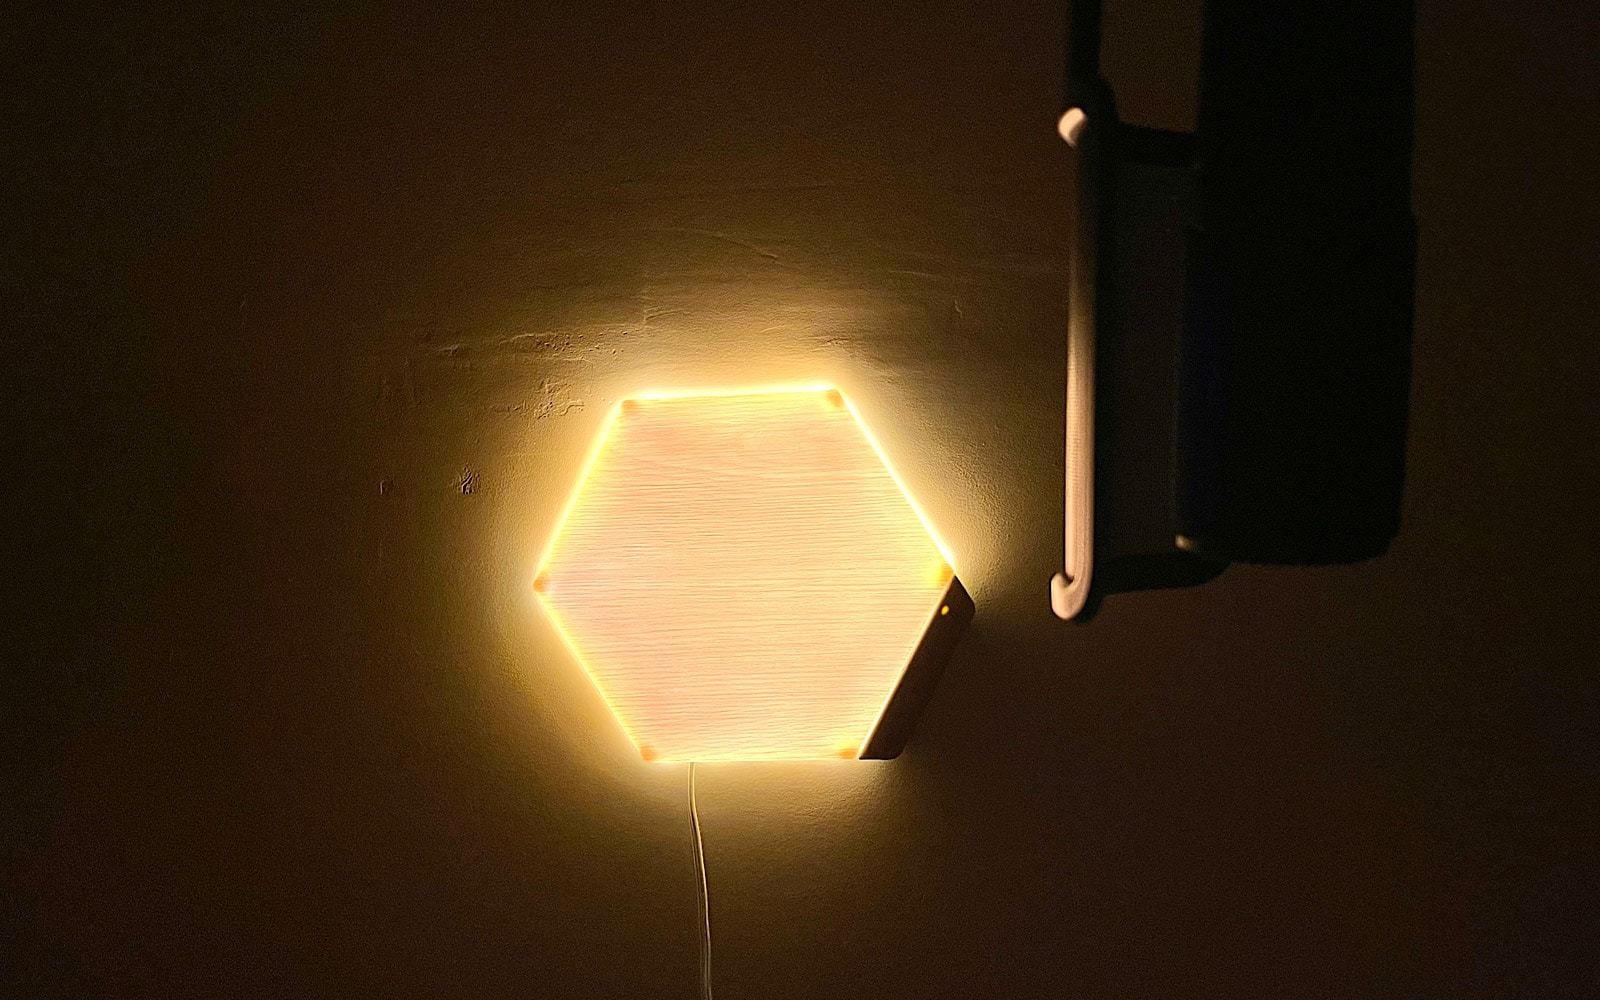 One Nanoleaf Elements module sits in our studio glowing, lighting up the microphone.